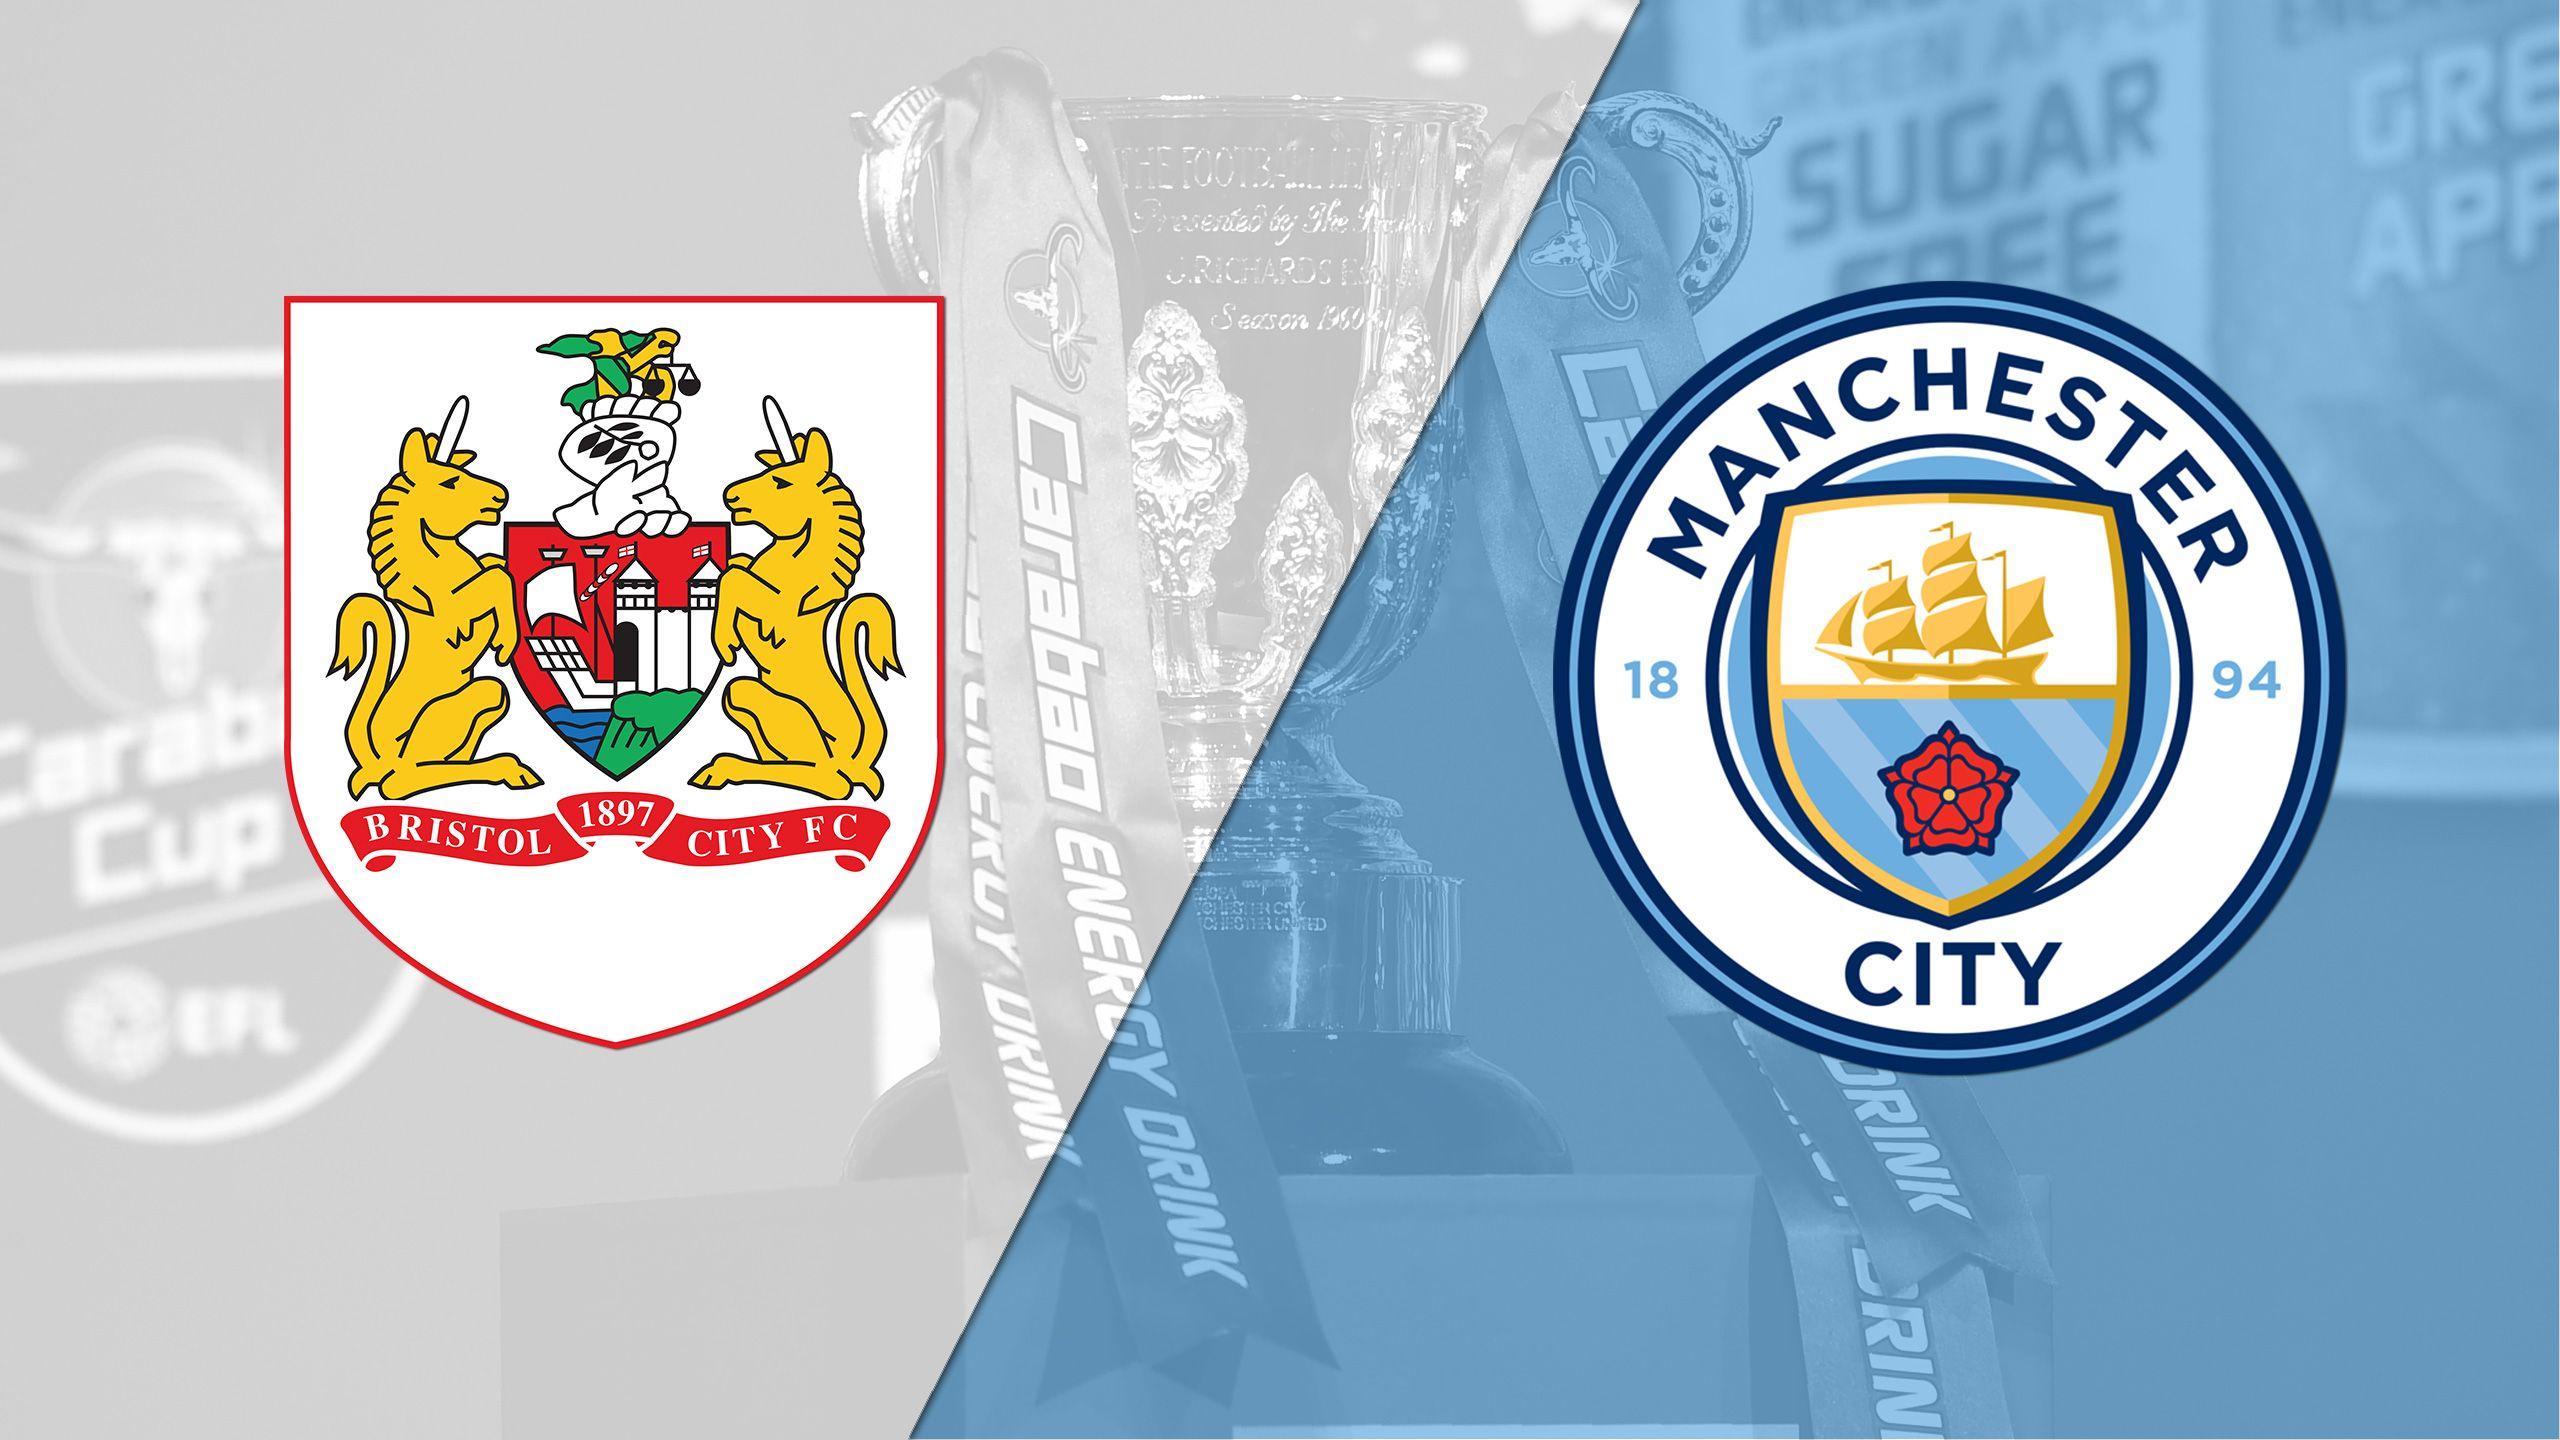 In Spanish - Bristol City vs. Manchester City (Carabo Cup)